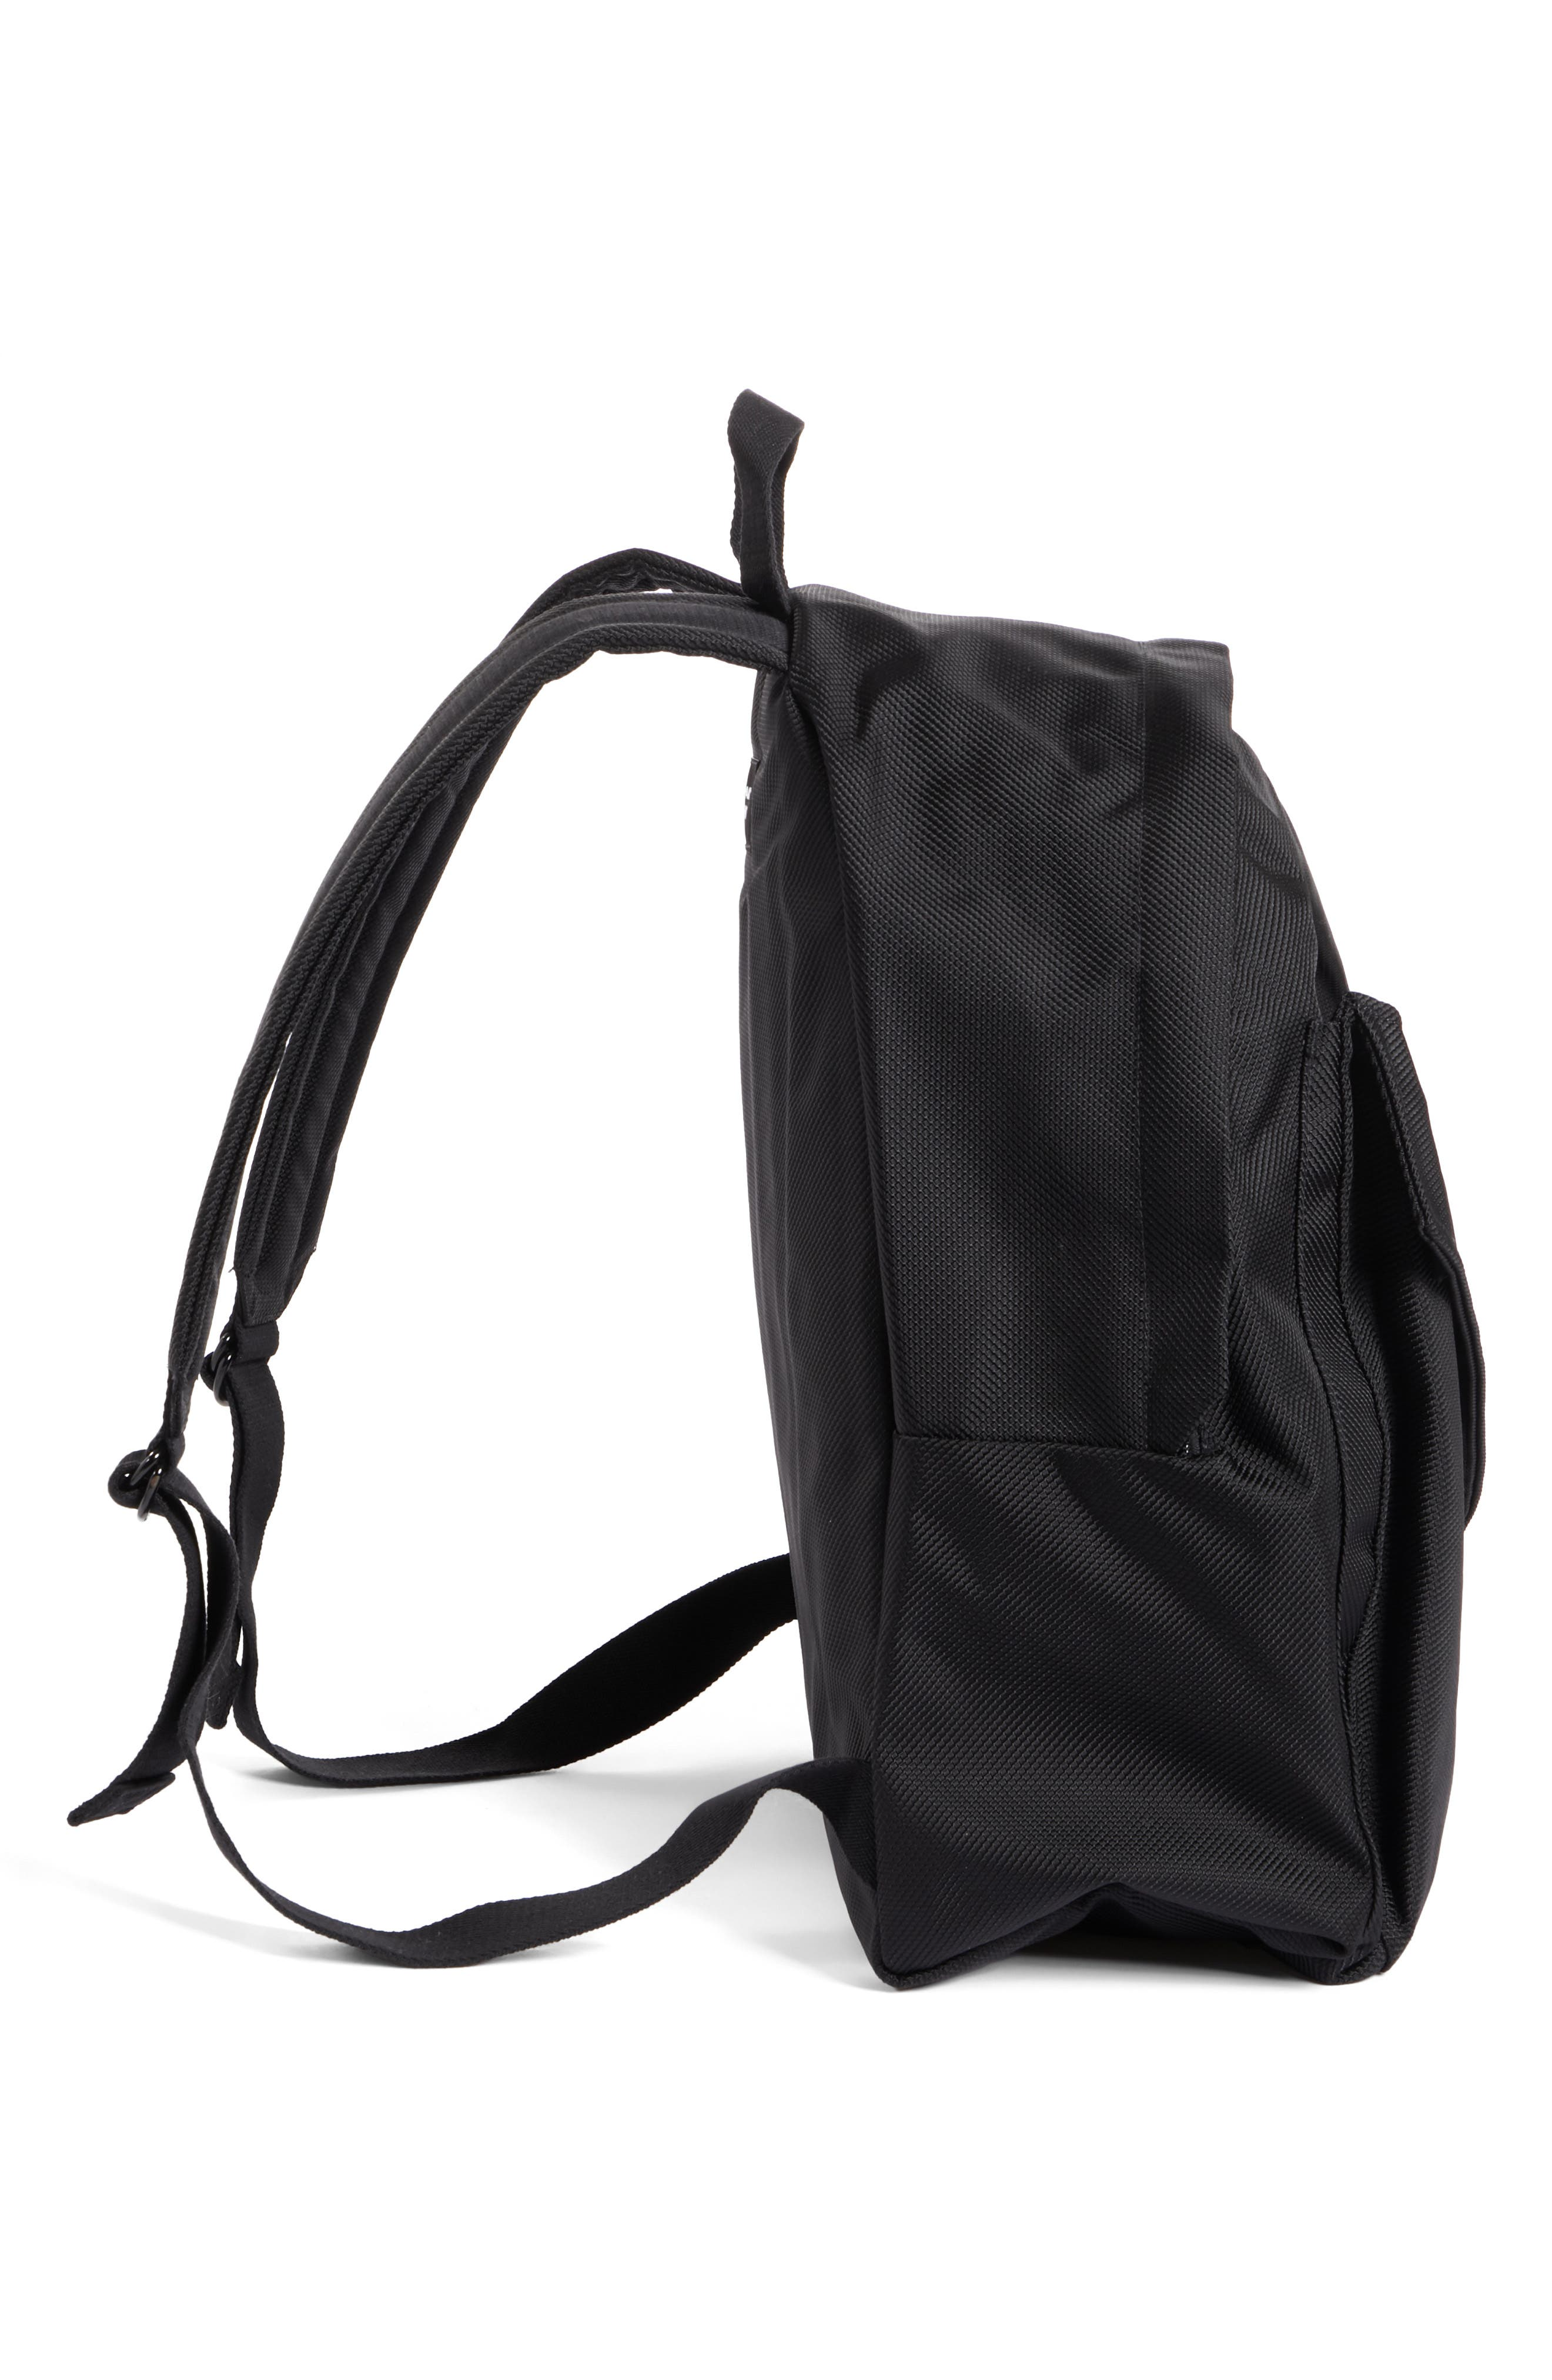 Eastpak x Raf Simons Classic Structured Backpack,                             Alternate thumbnail 5, color,                             001